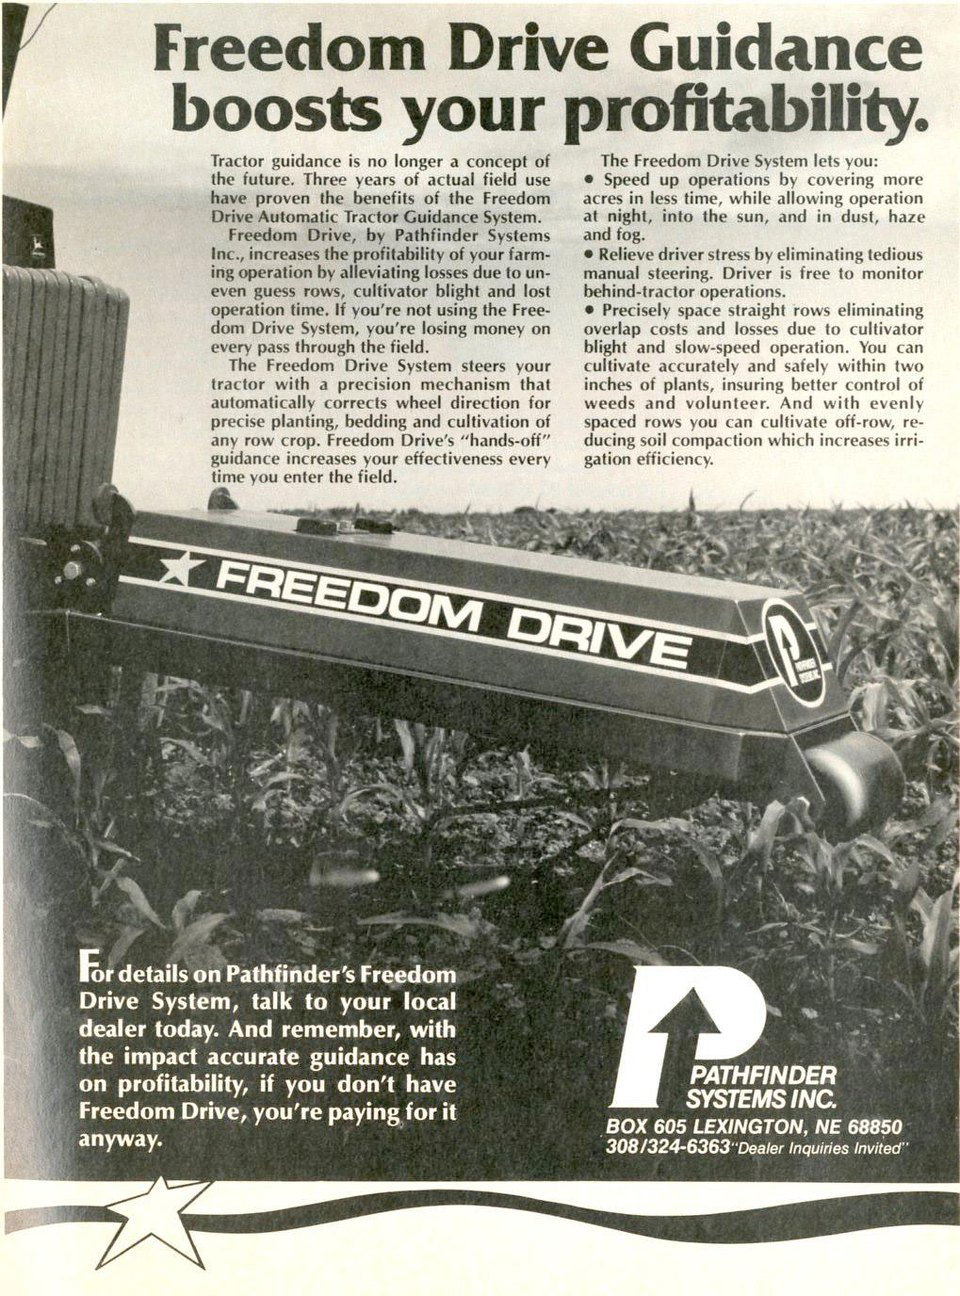 Freedom Drive Guidance boosts your profitability.   Tractor guidance is no longer a concept of the future. Three years of actual field use have proven the benefits of the Freedom Drive Automatic Tractor Guidance System. Freedom Drive, by Pathfinder Systems Inc., increases the profitability of your farm-ing operation by alleviating losses due to un-even guess rows, cultivator blight and lost operation time. If you're not using the Free-dom Drive System, you're losing money on every pass through the field. The Freedom Drive System steers your tractor with a precision mechanism that automatically corrects wheel direction for precise planting, bedding and cultivation of any row crop. Freedom Drive's ''hands-off'' guidance increases your effectiveness every time you enter the field.  The Freedom Drive System lets you: • Speed up operations by covering more acres in less time, while allowing operation at night, into the sun, and in dust, haze and fog. • Relieve driver stress by eliminating tedious manual steering. Driver is free to monitor behind-tractor operations. • Precisely space straight rows eliminating overlap costs and losses due to cultivator blight and slow-speed operation. You can cultivate accurately and safely within two inches of plants, insuring better control of weeds and volunteer. And with evenly spaced rows you can cultivate off-row, re-ducing soil compaction which increases irri-gation efficiency.  A.''-• For details on Pathfinder's Freedom Drive System, talk to your local dealer today. And remember, with the impact accurate guidance has on profitability, if you don't have Freedom Drive, you're paying for it anyway.   PATHFINDER SYSTEMS INC. BOX 605 LEXINGTON, NE 68850 308/324-6363-Dealer Inquiries Invited''